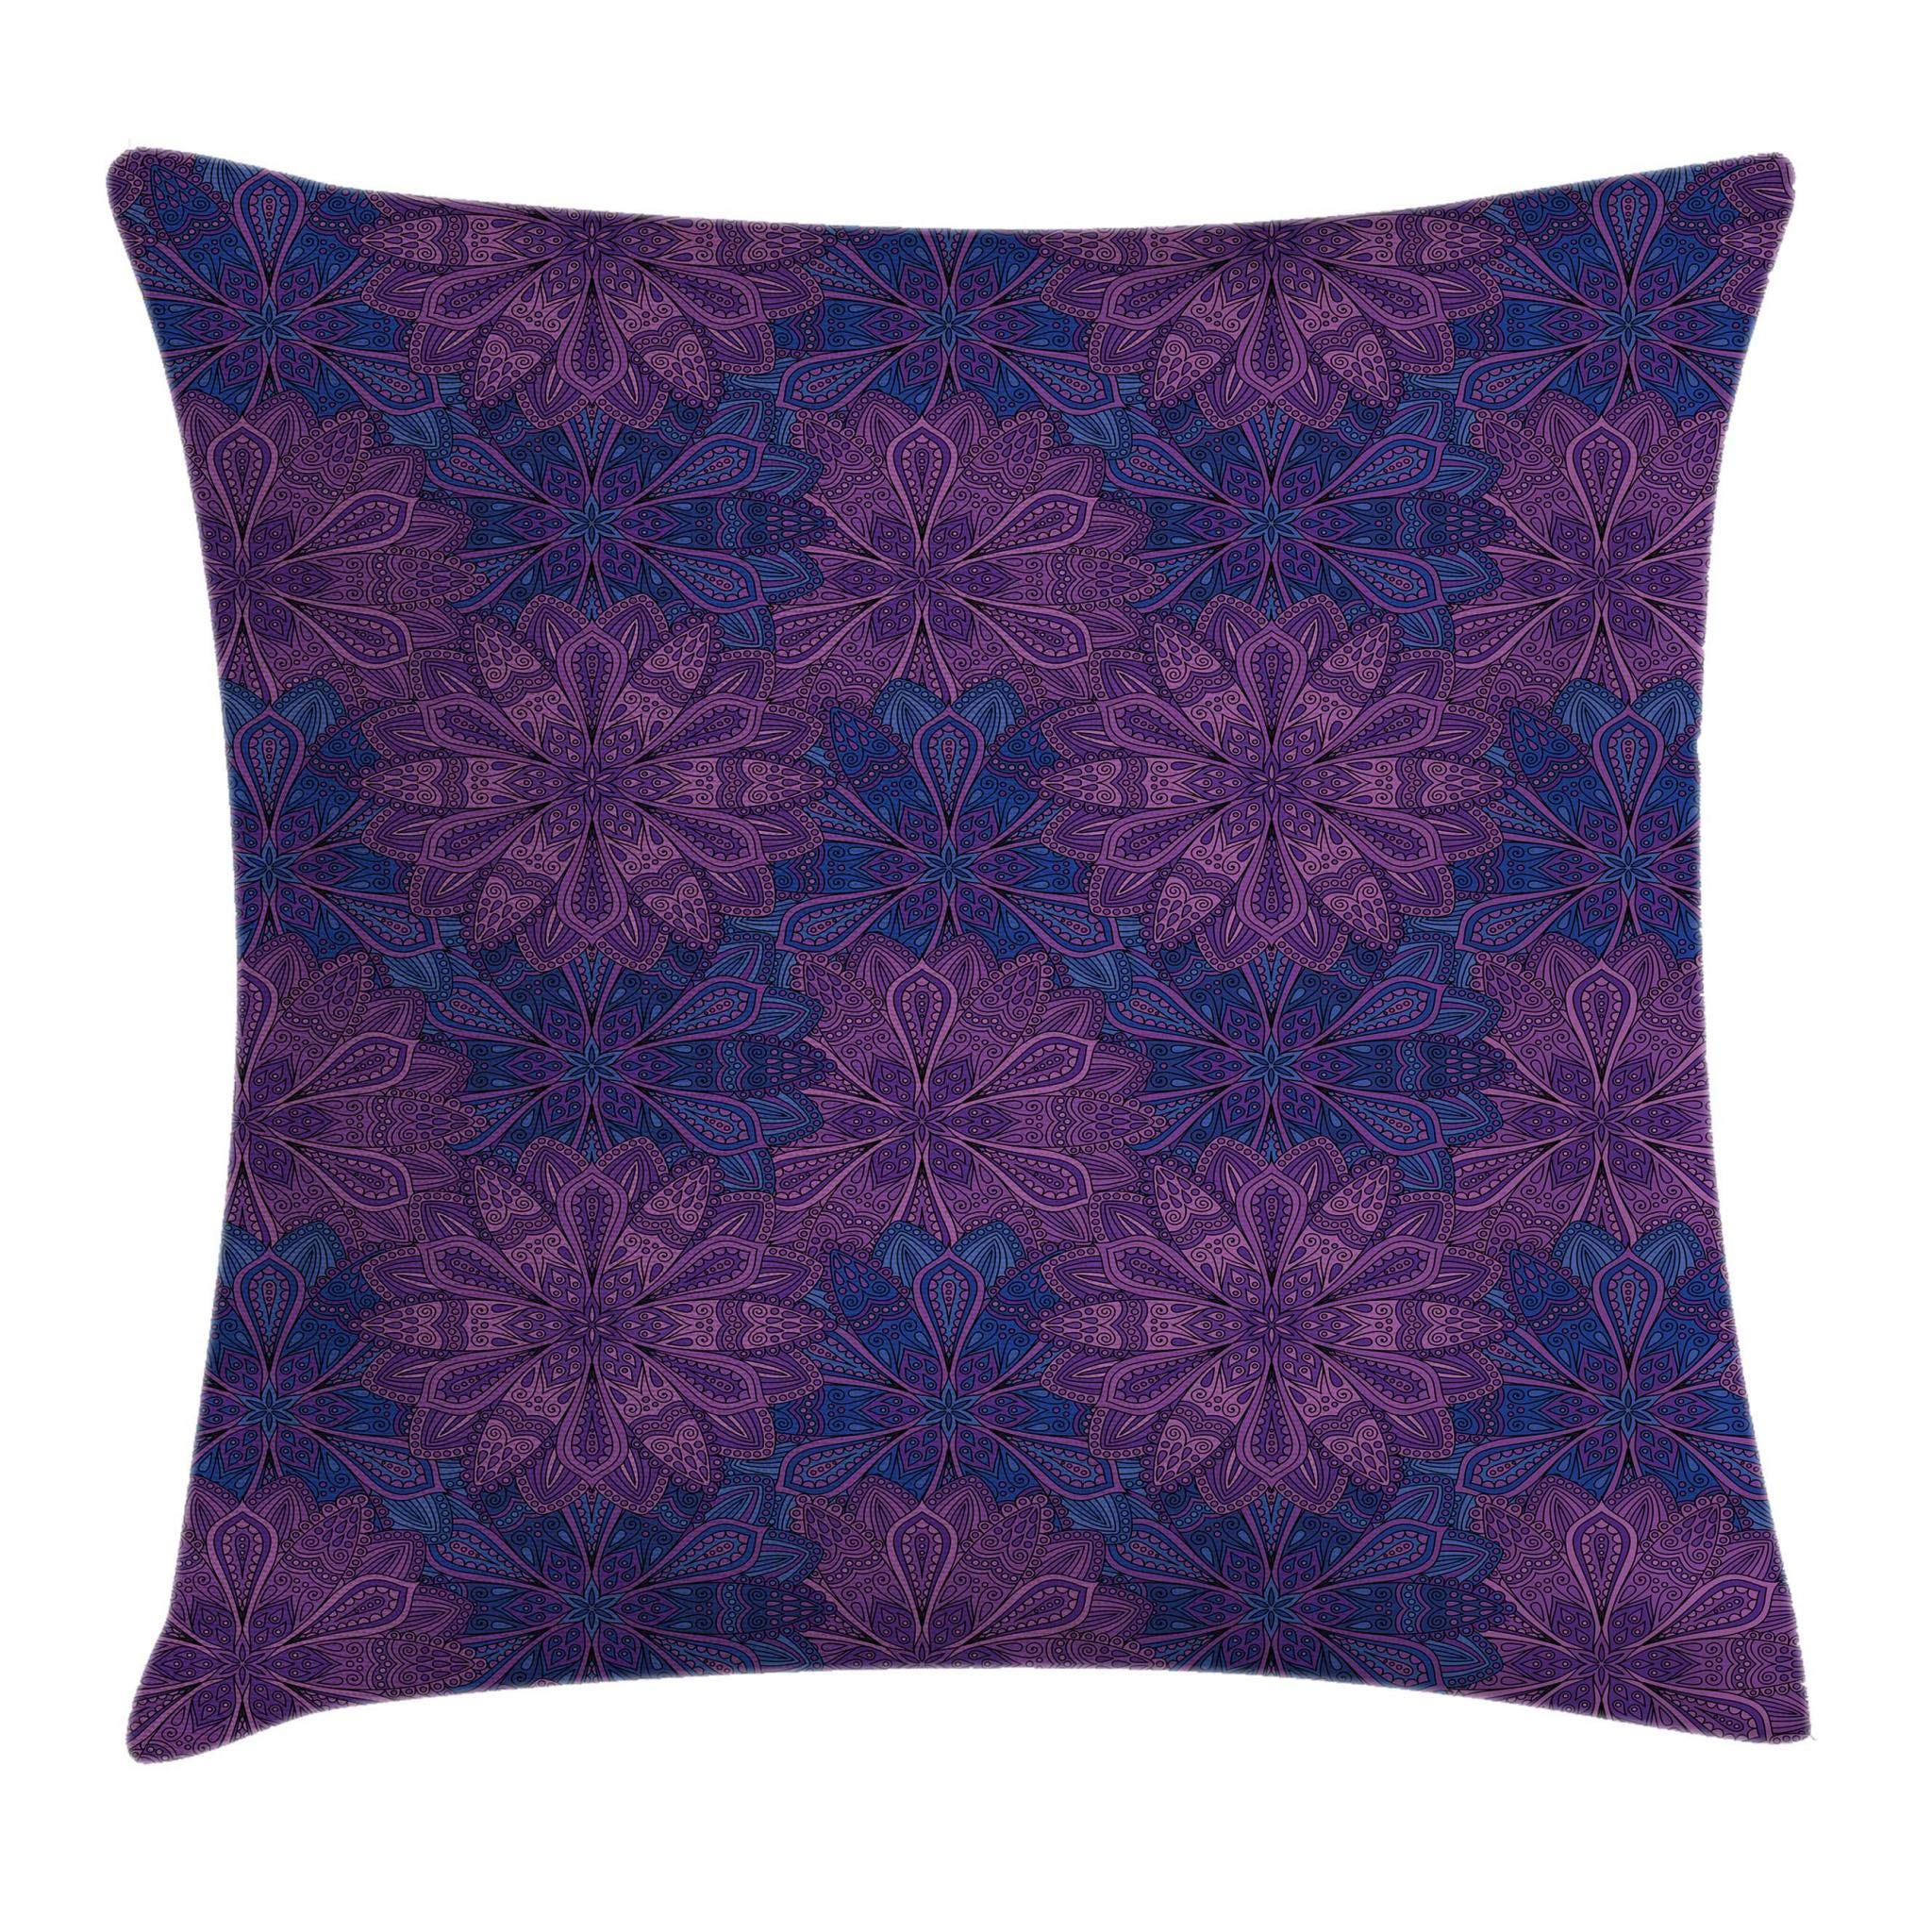 Ambesonne Indigo Throw Pillow Cushion Cover, Ethnic Paisley Flower Inspired Design with Inner Swirls Leaves Image, Decorative Square Accent Pillow Case, 18 X 18 Inches, Pink Purple and Dark Blue